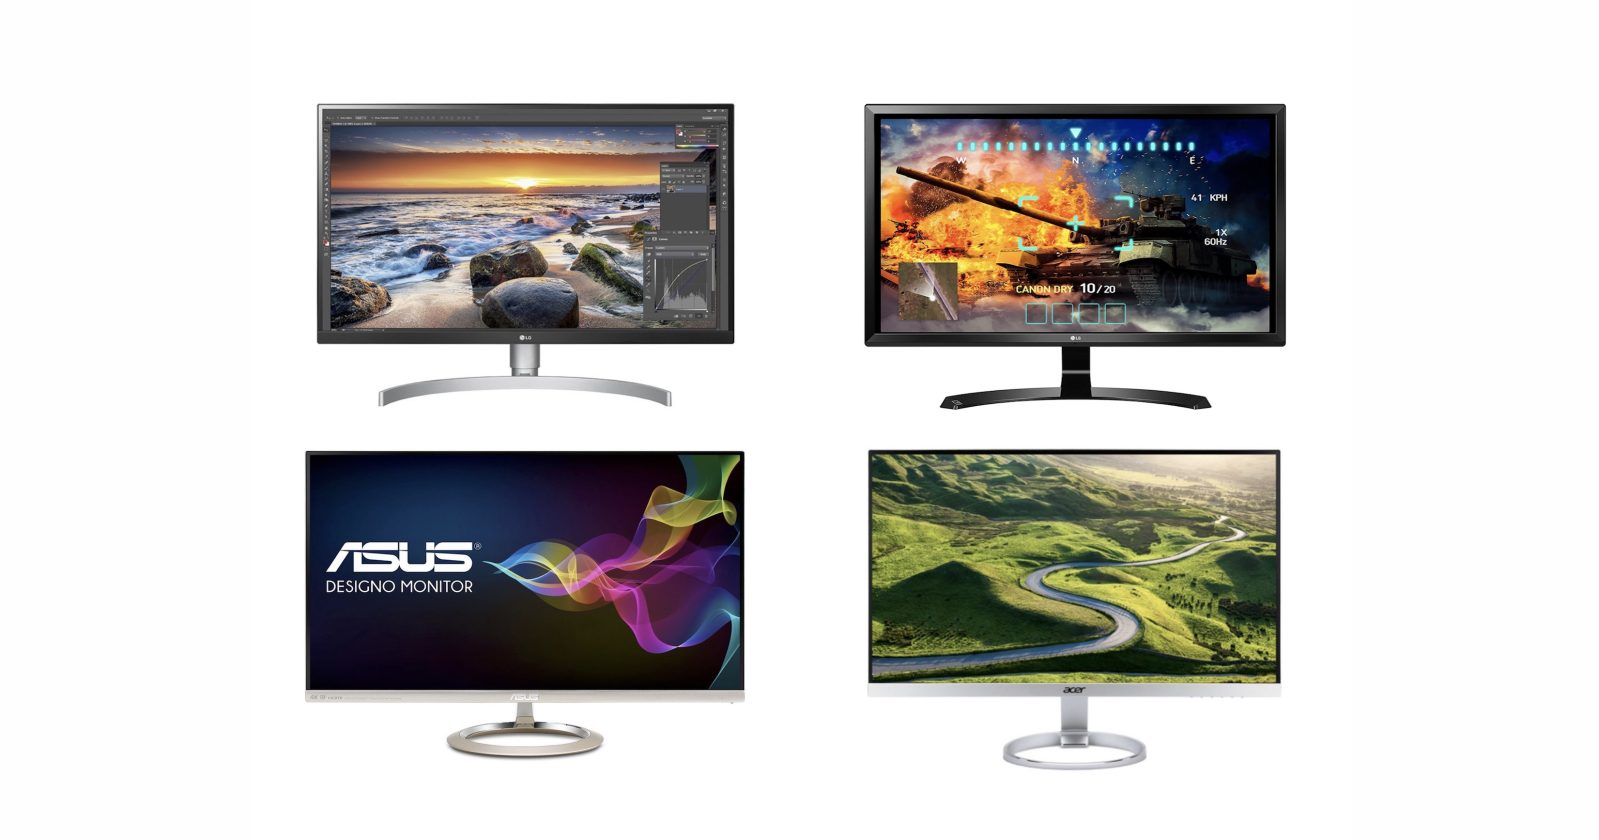 Update: New LG and Samsung options] Best 4K and USB-C displays for